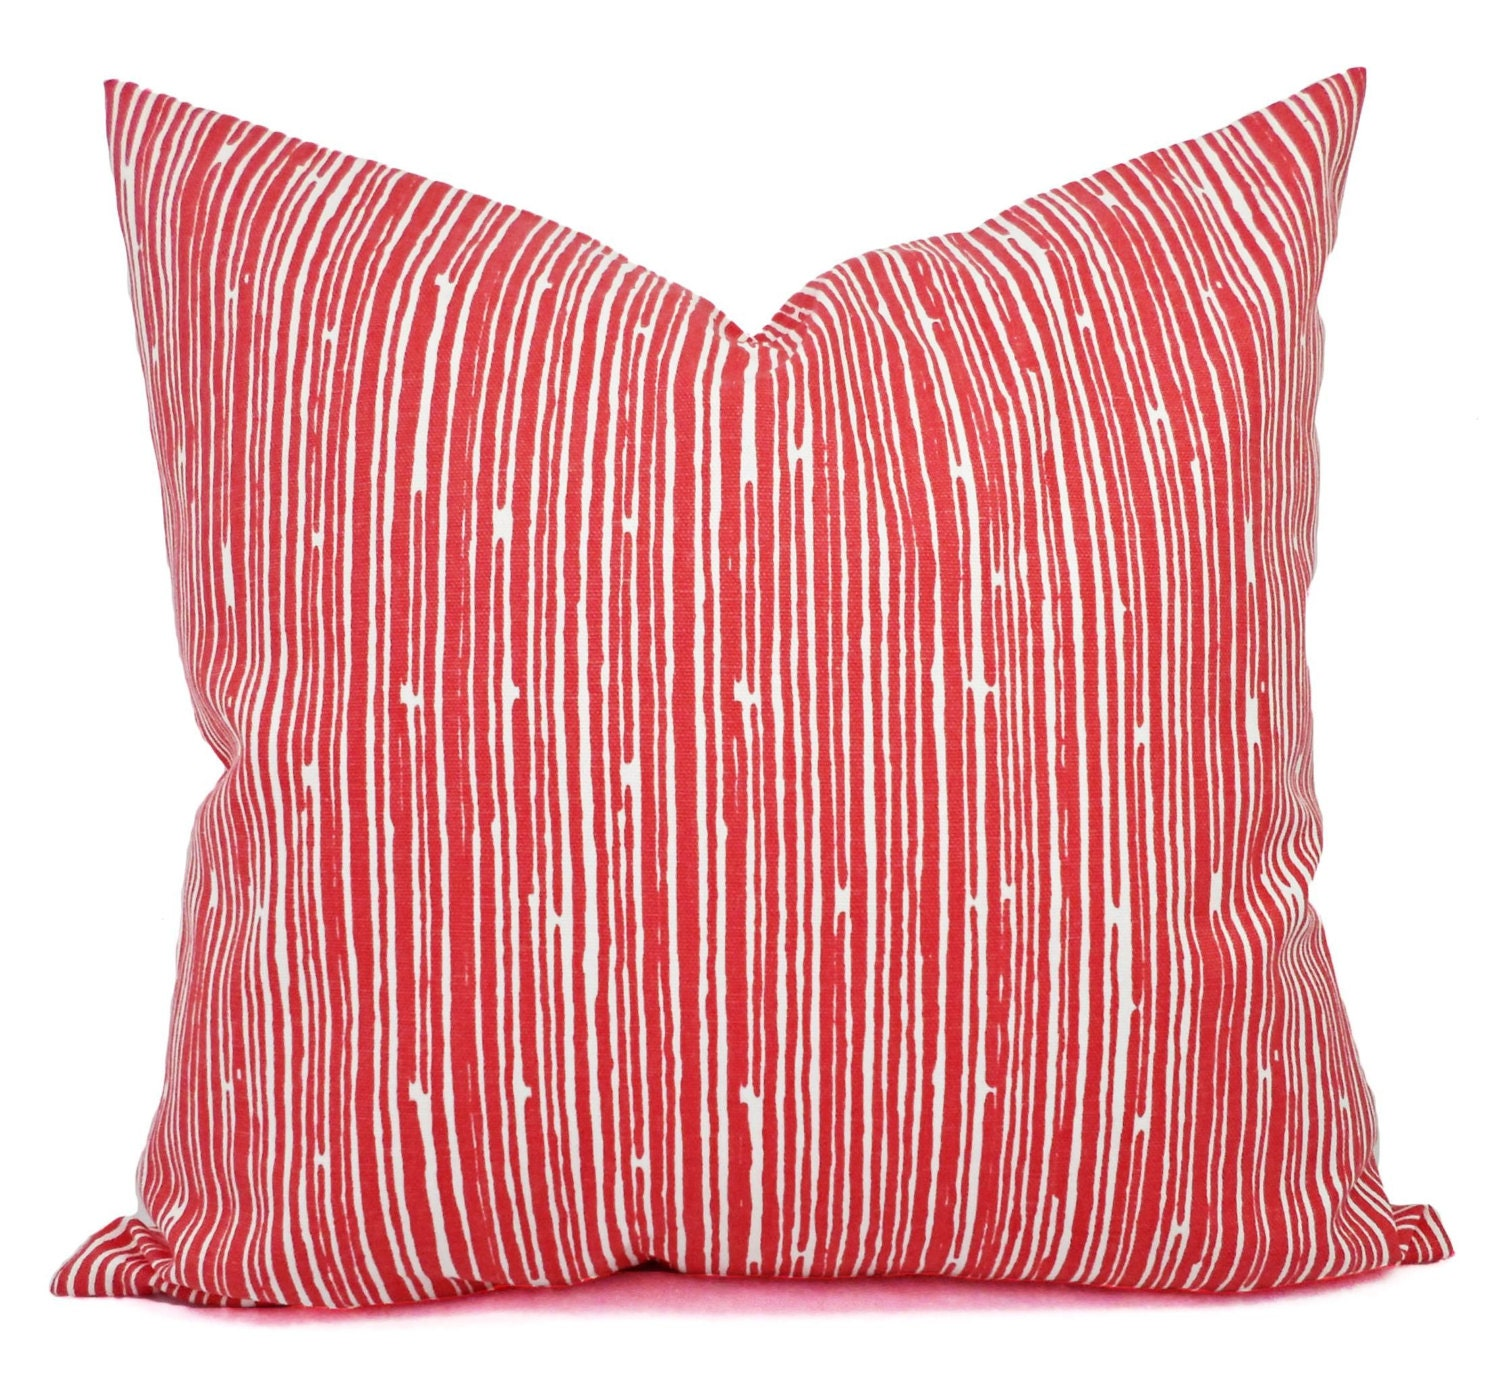 Throw Pillows Coral : Two Coral Throw Pillows Pillows Coral Stripe Decorative